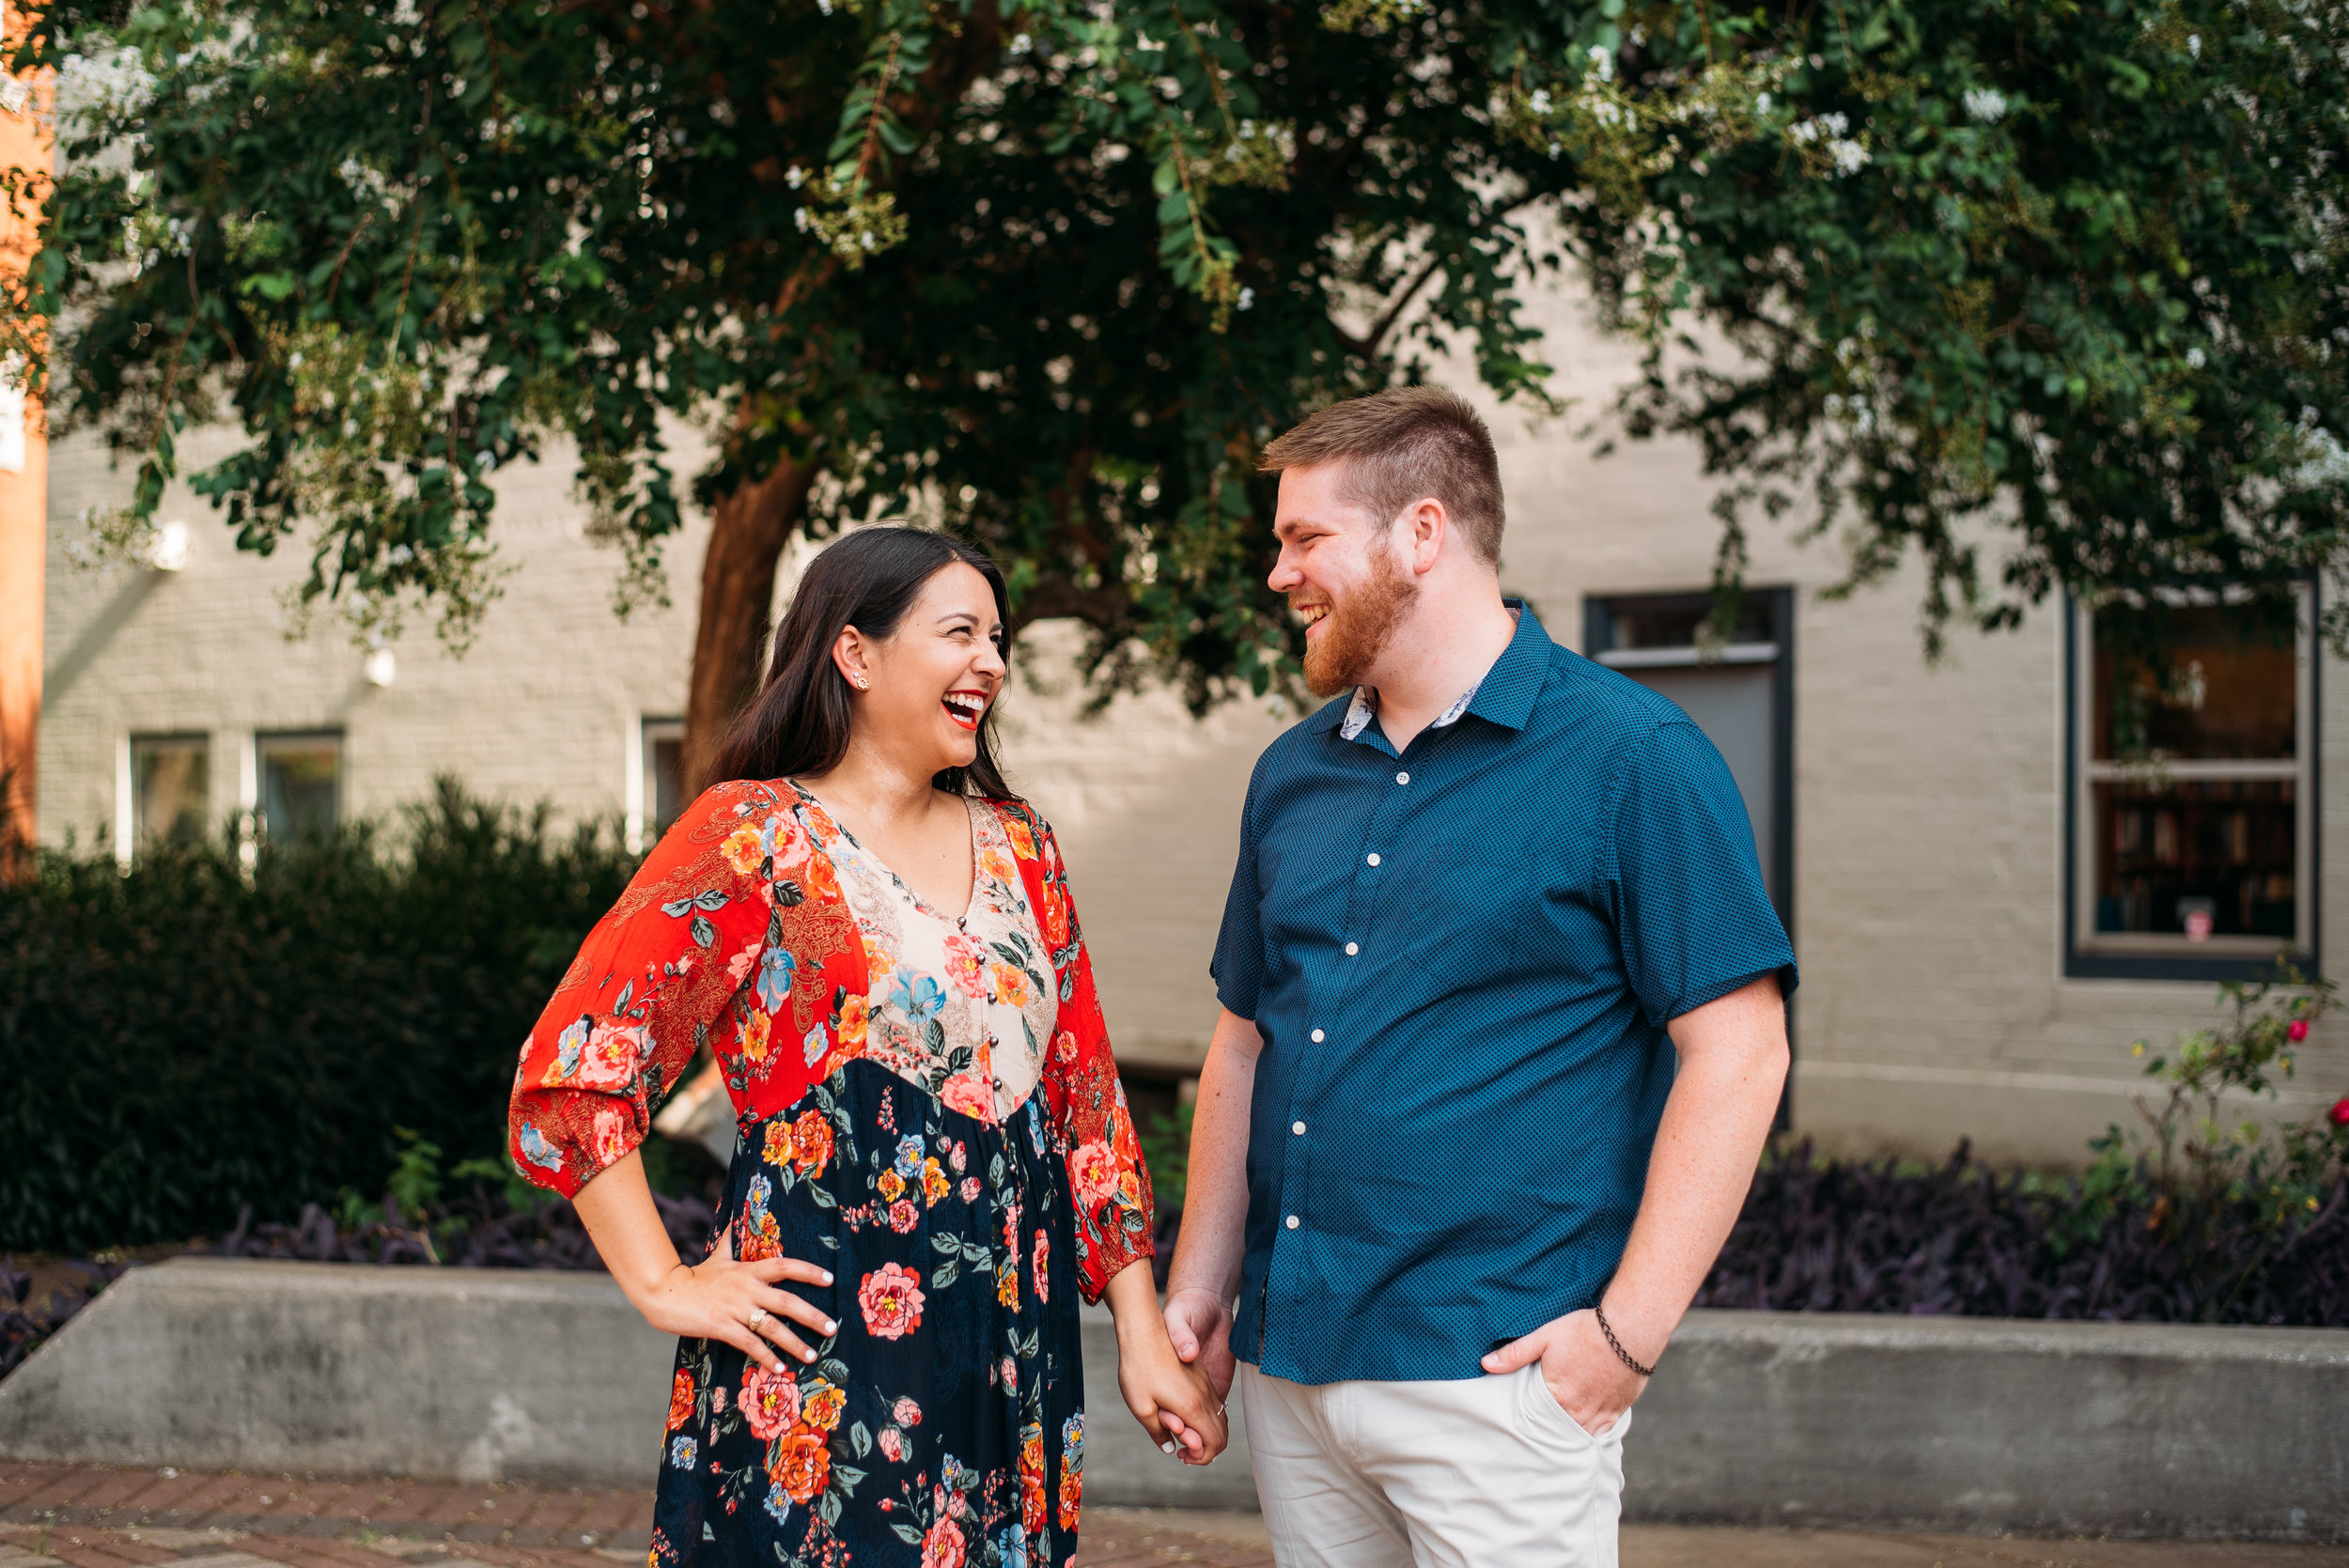 Downtown-Bryan-Engagement-George-Bush-Library-Texas-A&M-University-College-Station-Wedding-Photographer-San-Angel-Photo-Mark-Abigail-Jake-02.jpg